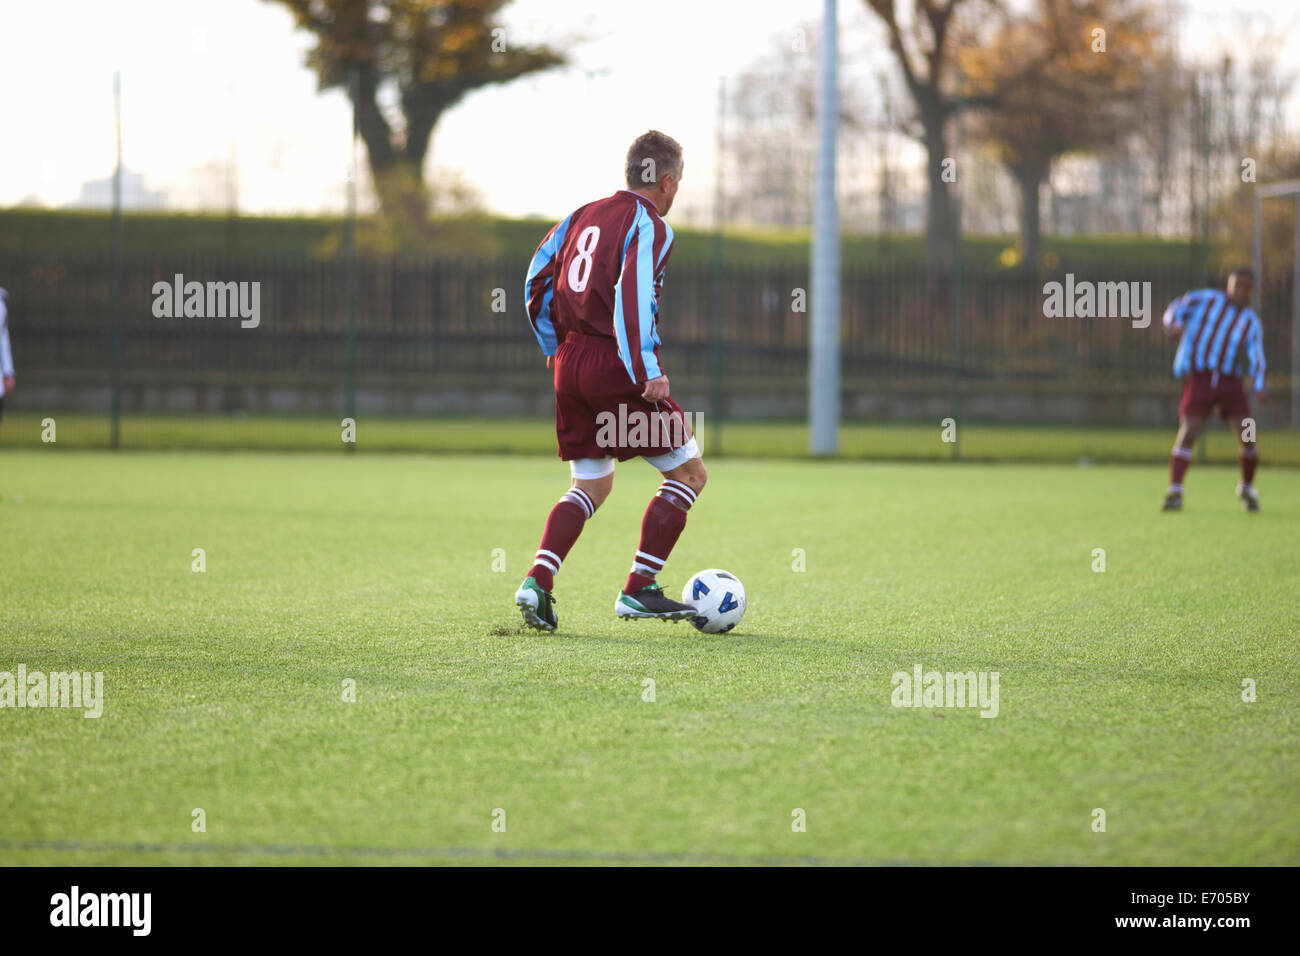 Football player with possession of ball - Stock Image